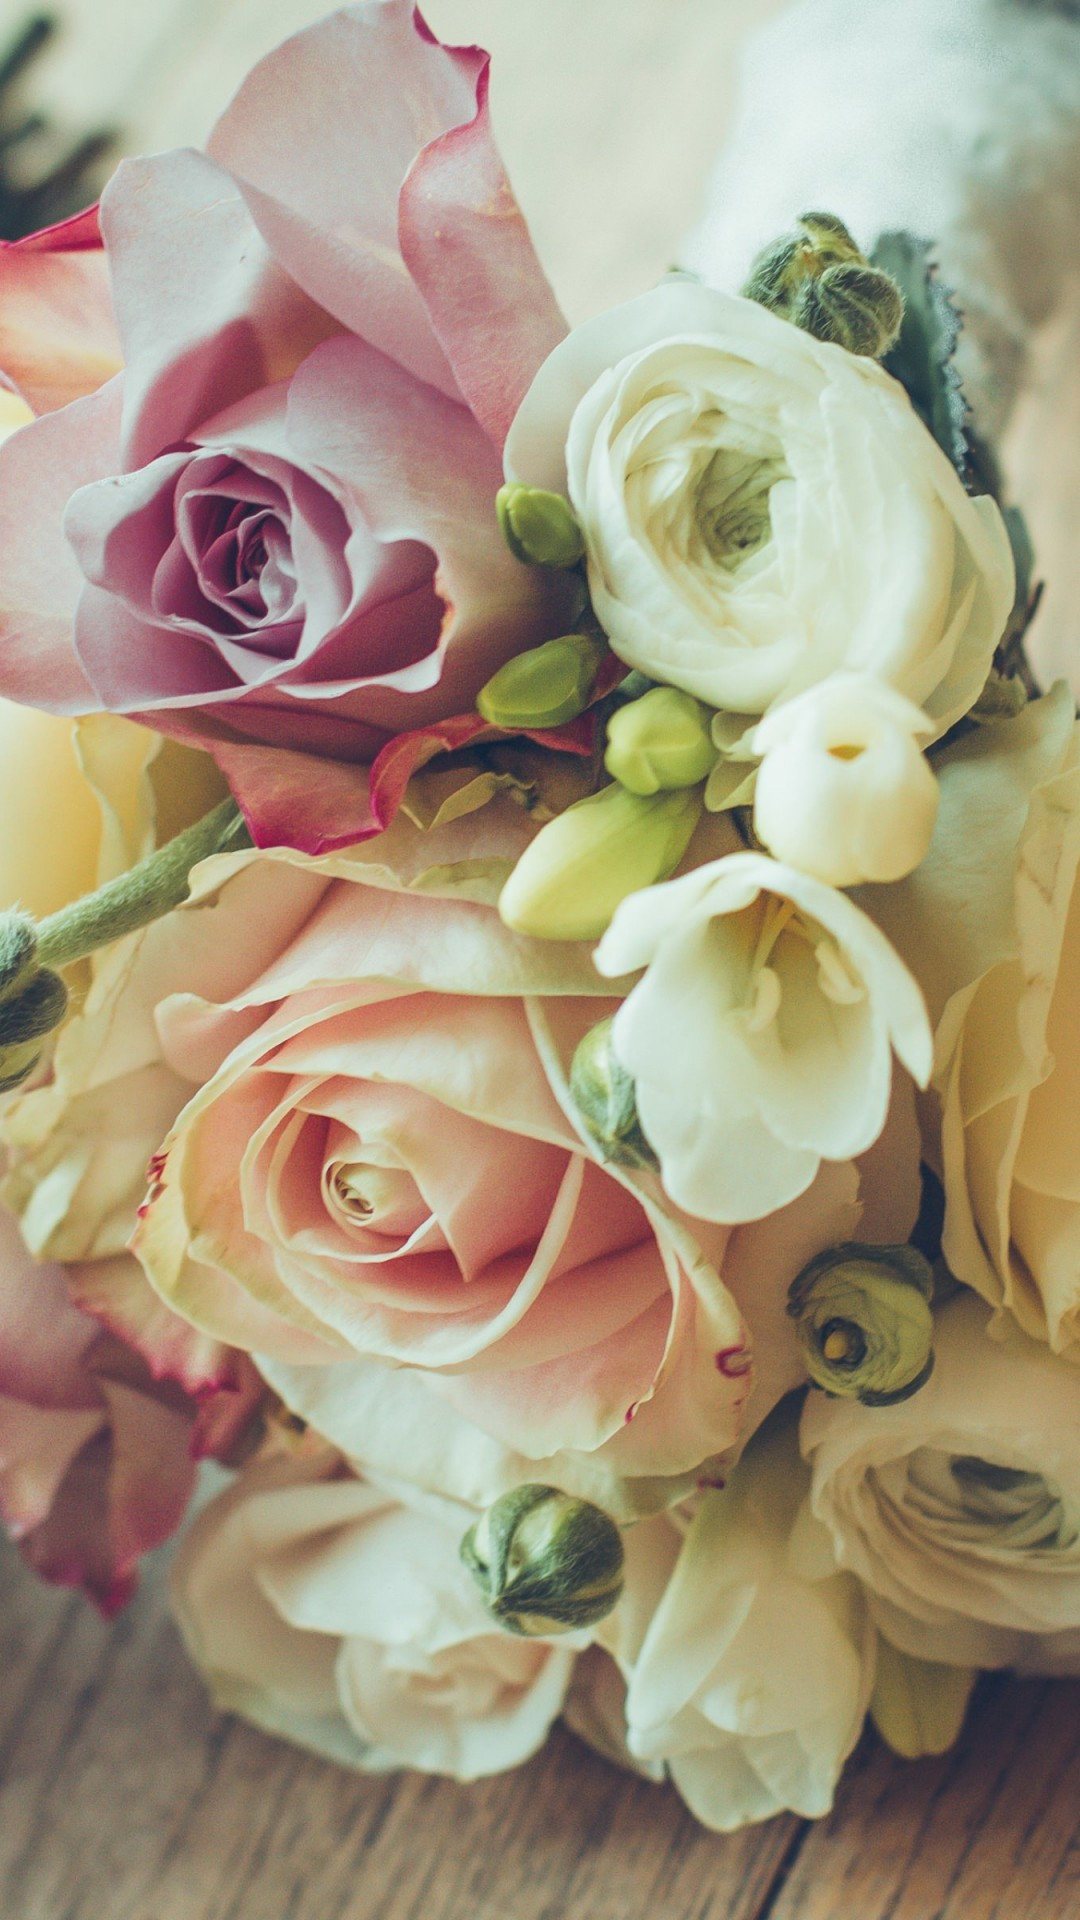 Roses Bouquet Composition Wallpaper for Motorola Moto X